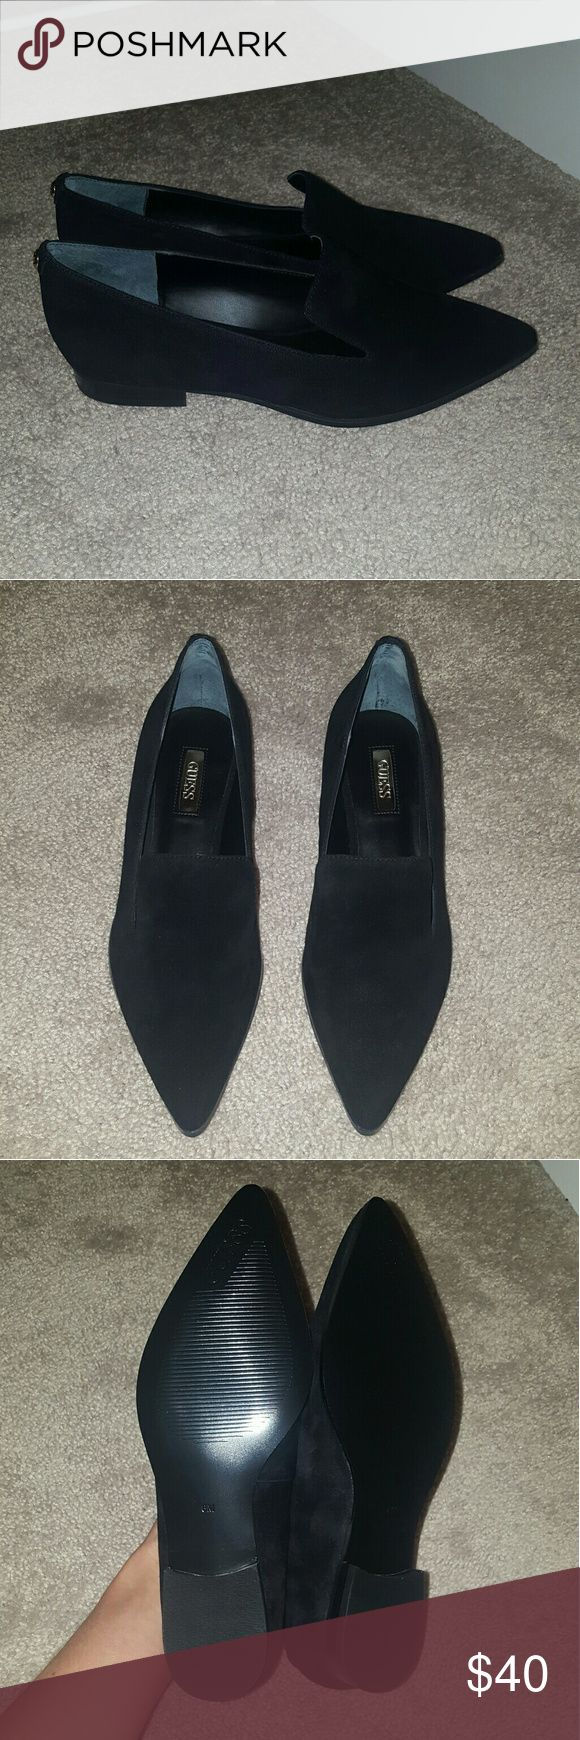 Suede Guess Loafers Black suede loafers from Guess. Brand new with box. The suede is super soft and excellent quality. I love these shoes but just haven't worn them so can't justify keeping them. Perfect for work as well as casual-wear. Open to reasonable offers, but no swaps please. Guess Shoes Flats & Loafers